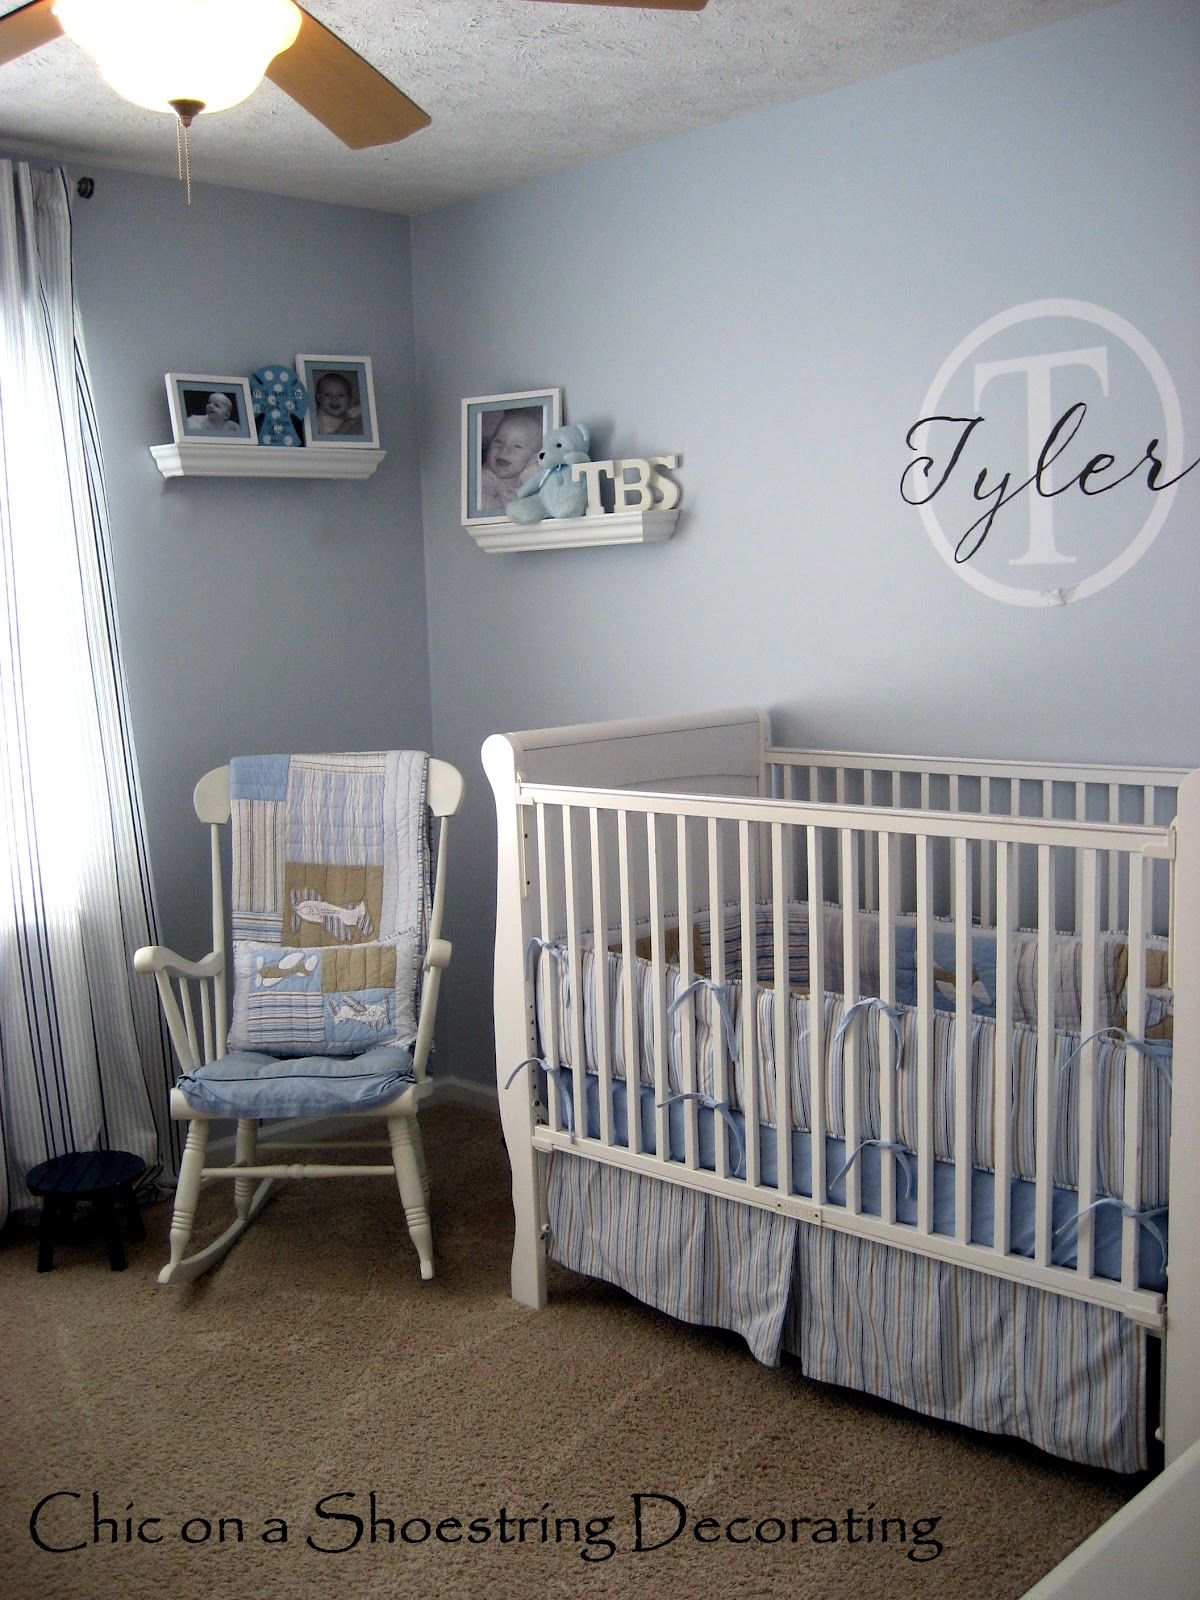 chic on a shoestring decorating my boy 39 s nursery tour. Black Bedroom Furniture Sets. Home Design Ideas